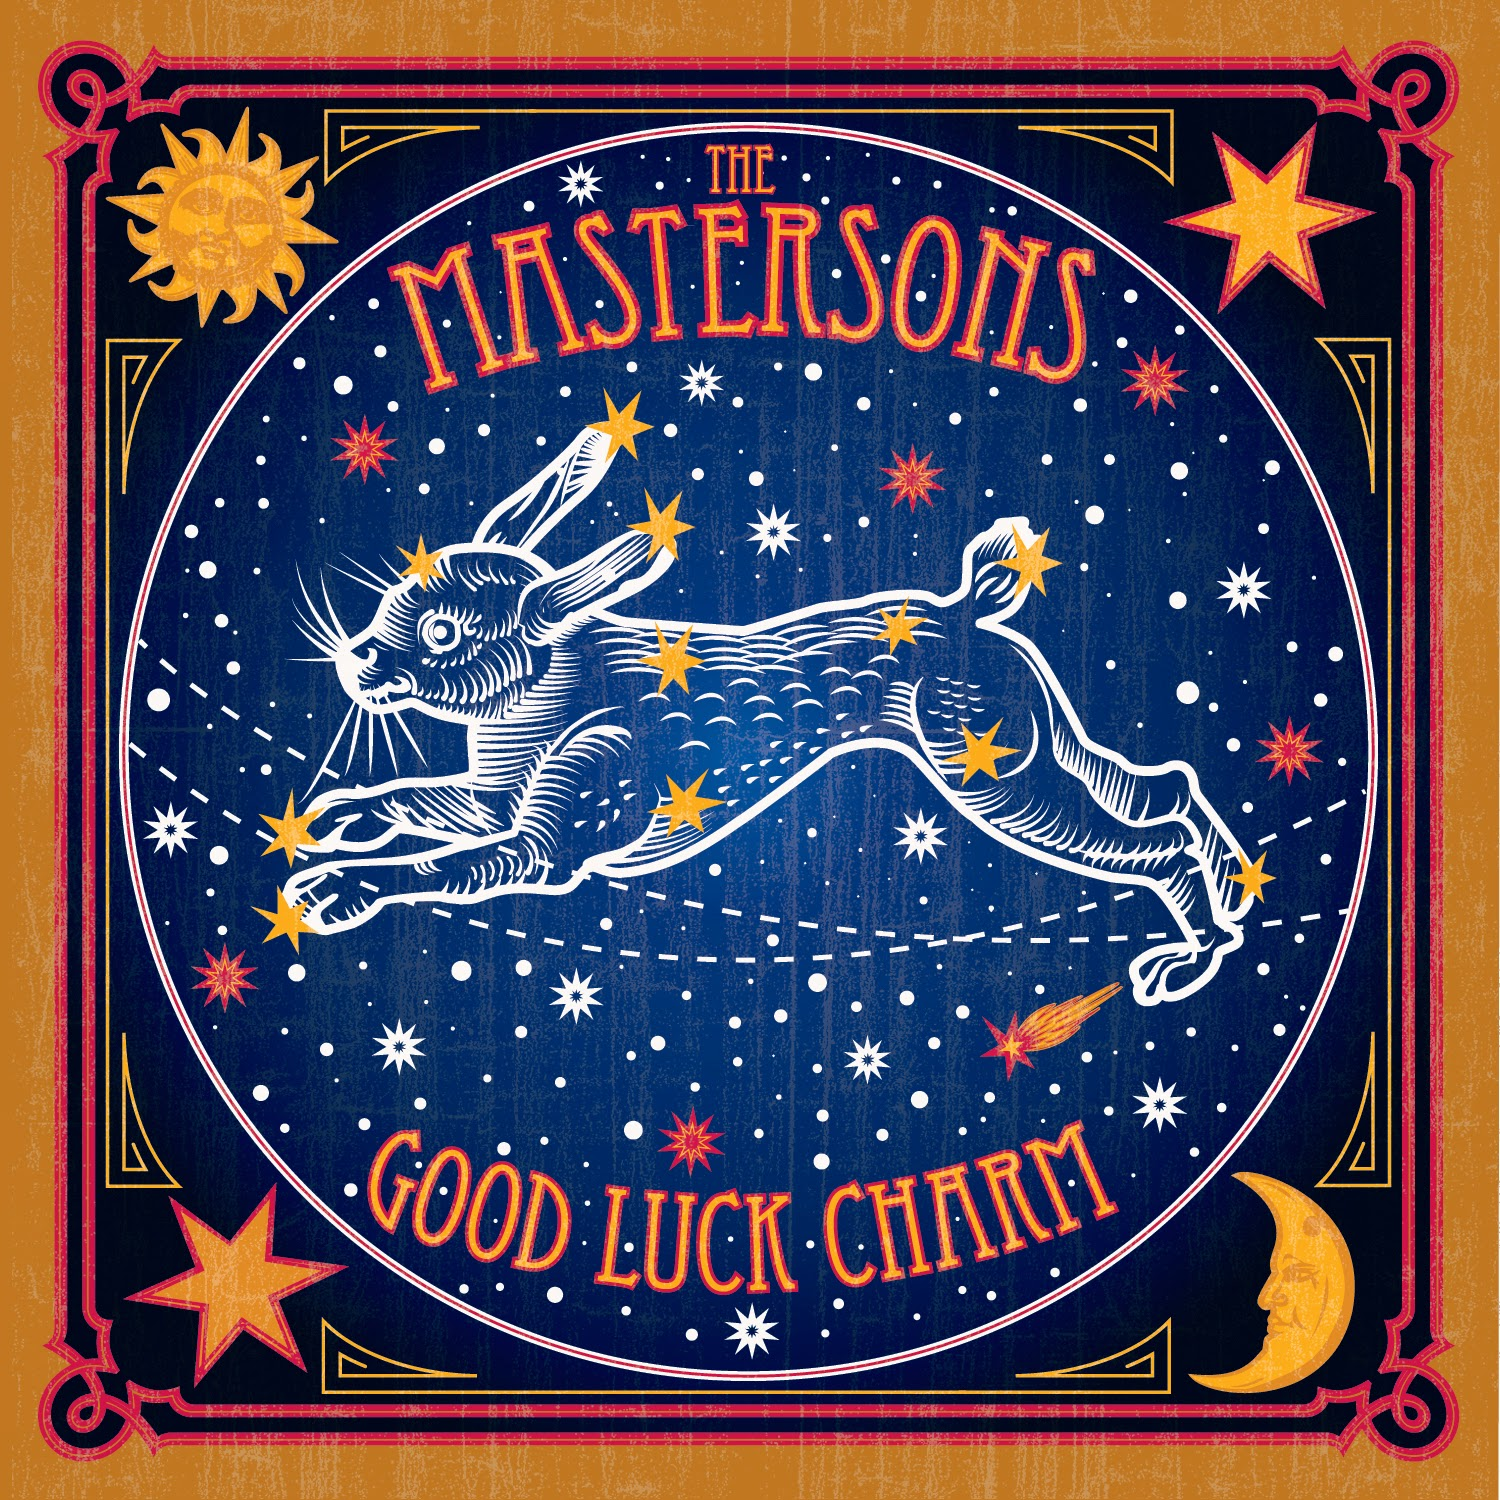 THE MASTERSONS - (2014) Good luck charm